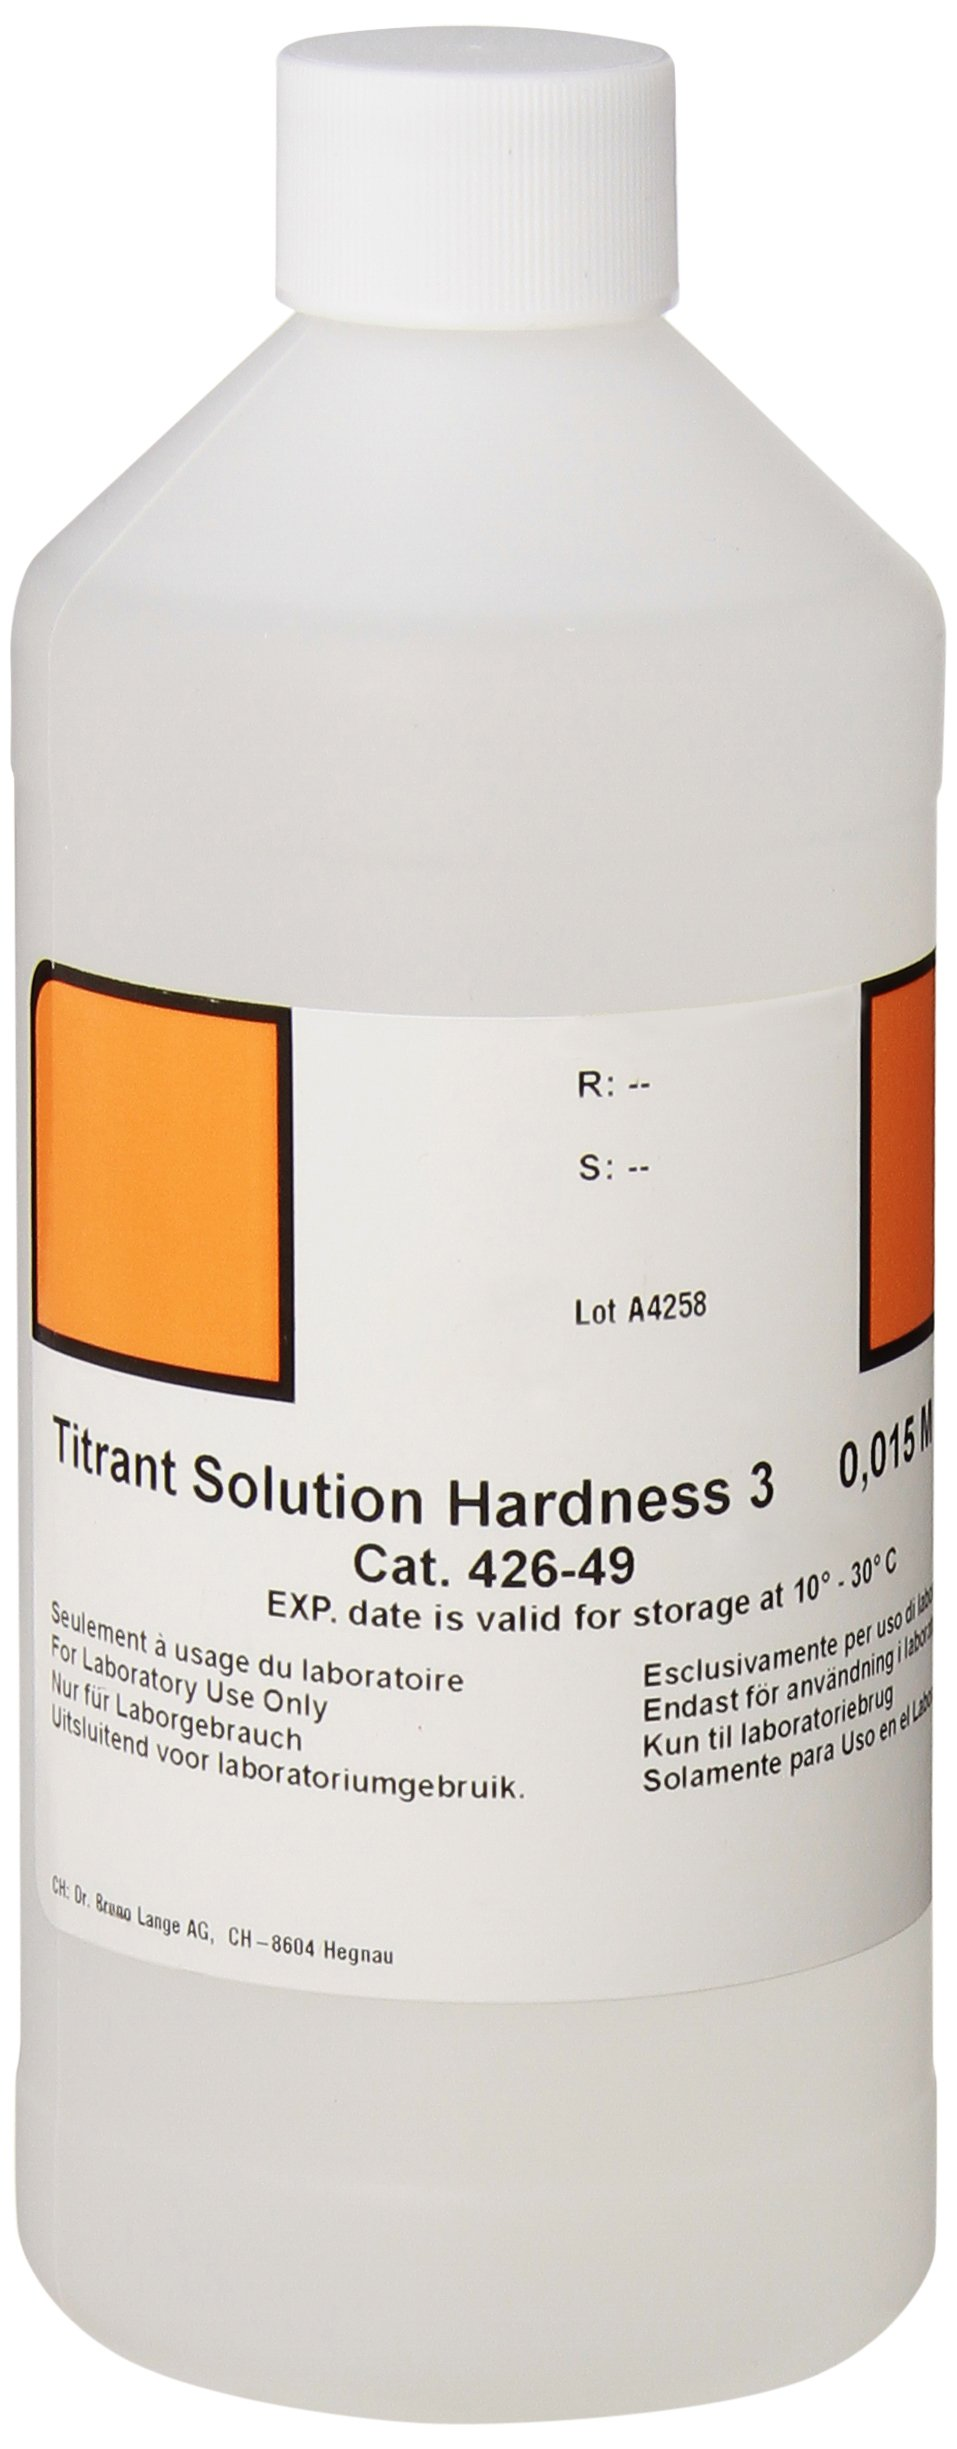 Hach 42649 Hardness 3 Solution, 500 mL